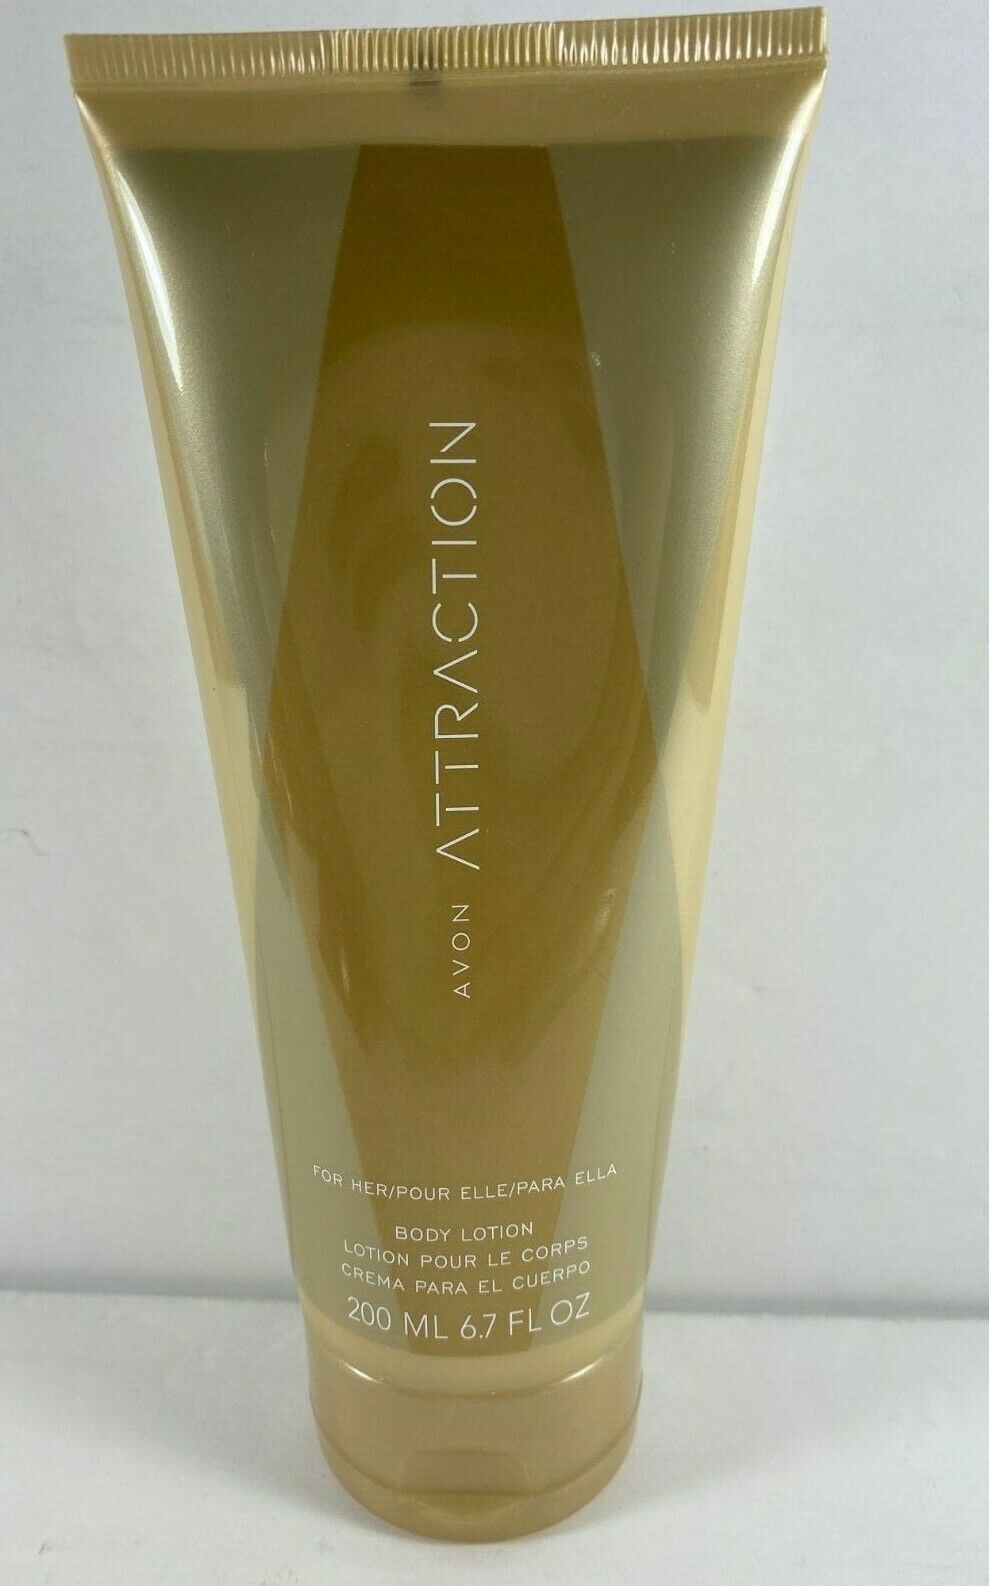 Primary image for Avon ATTRACTION FOR HER Body Lotion 6.7 fl oz